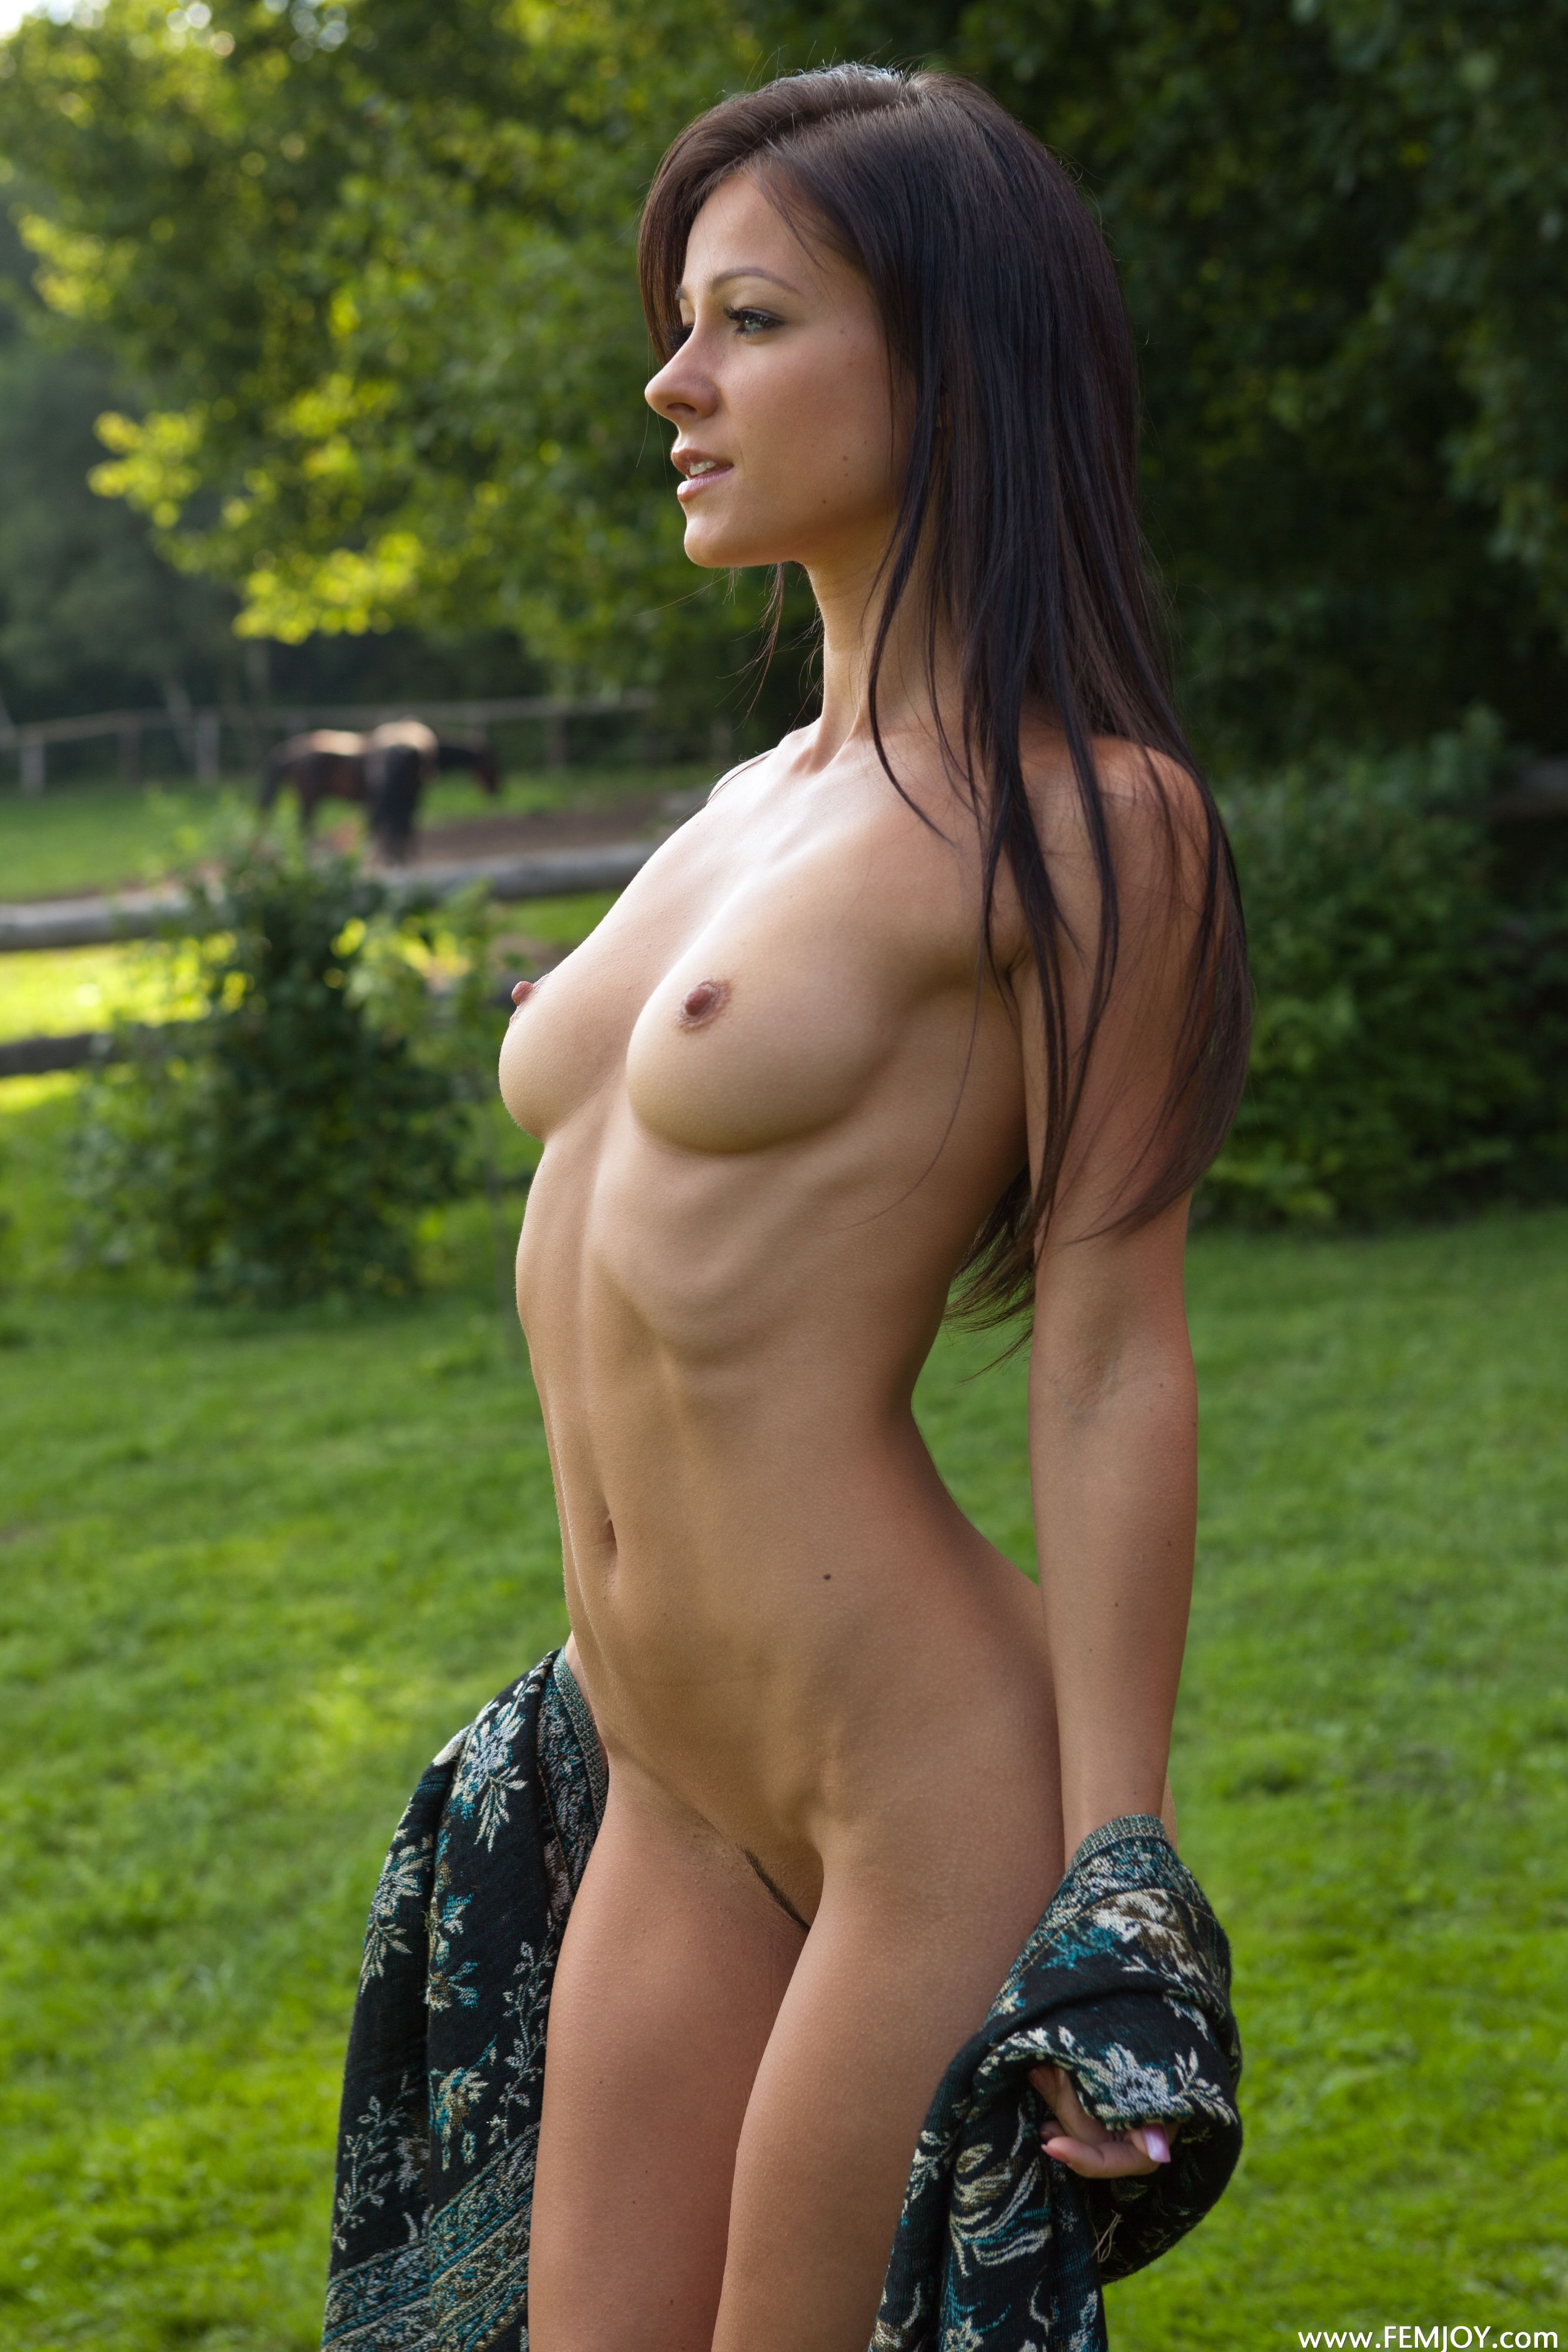 Nude Abs 70